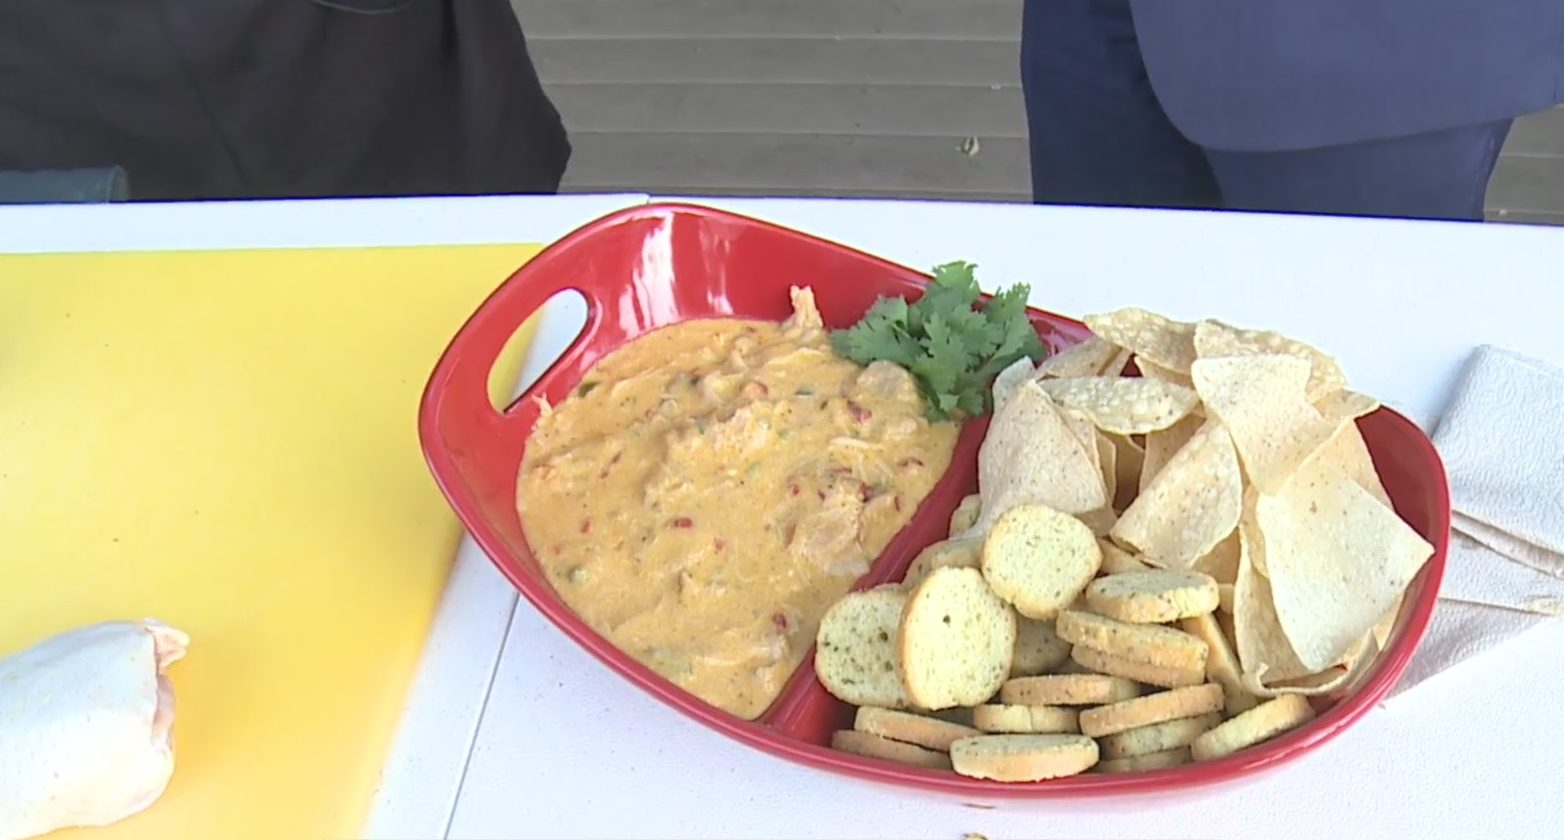 Picture of grilled chicken pimento dip from Plowboys BBQ